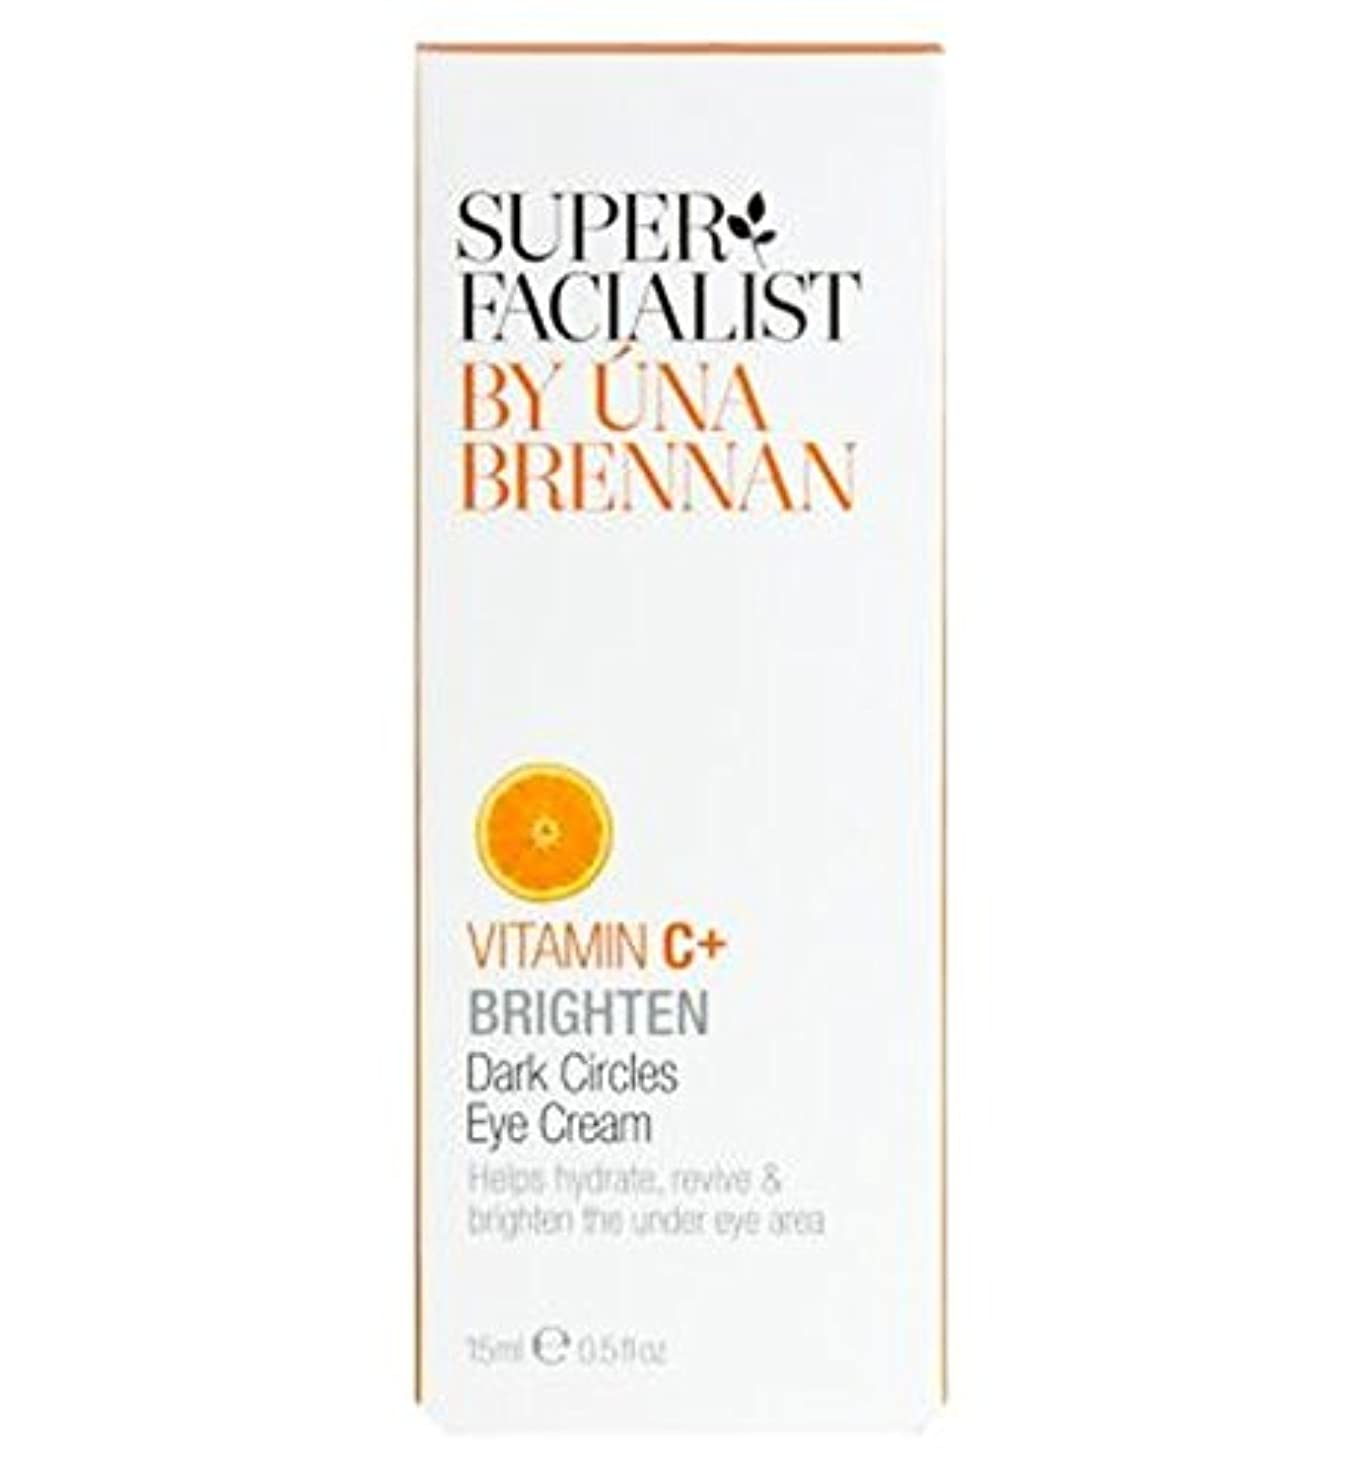 着陸性能ピンSuperfacialist Vitamin C+ Dark Circles Eye Cream 15ml - SuperfacialistビタミンC +くまアイクリーム15ミリリットル (Superfacialist)...